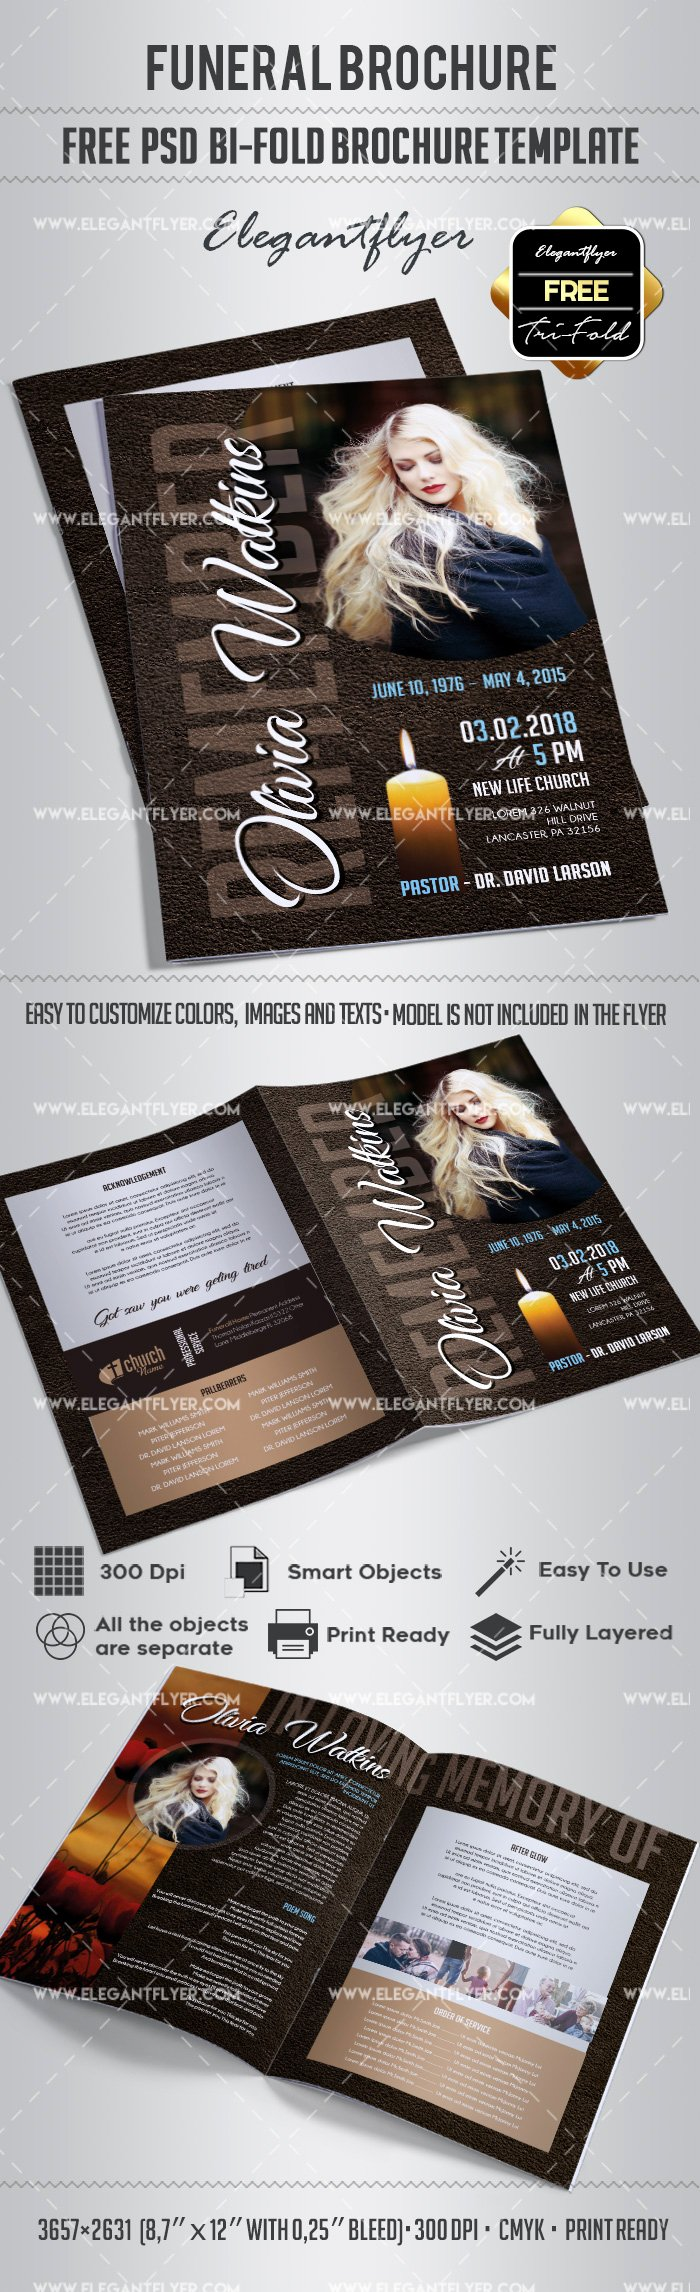 2 Folded Brochure Template Unique Free Bi Fold Brochure for Funeral – by Elegantflyer